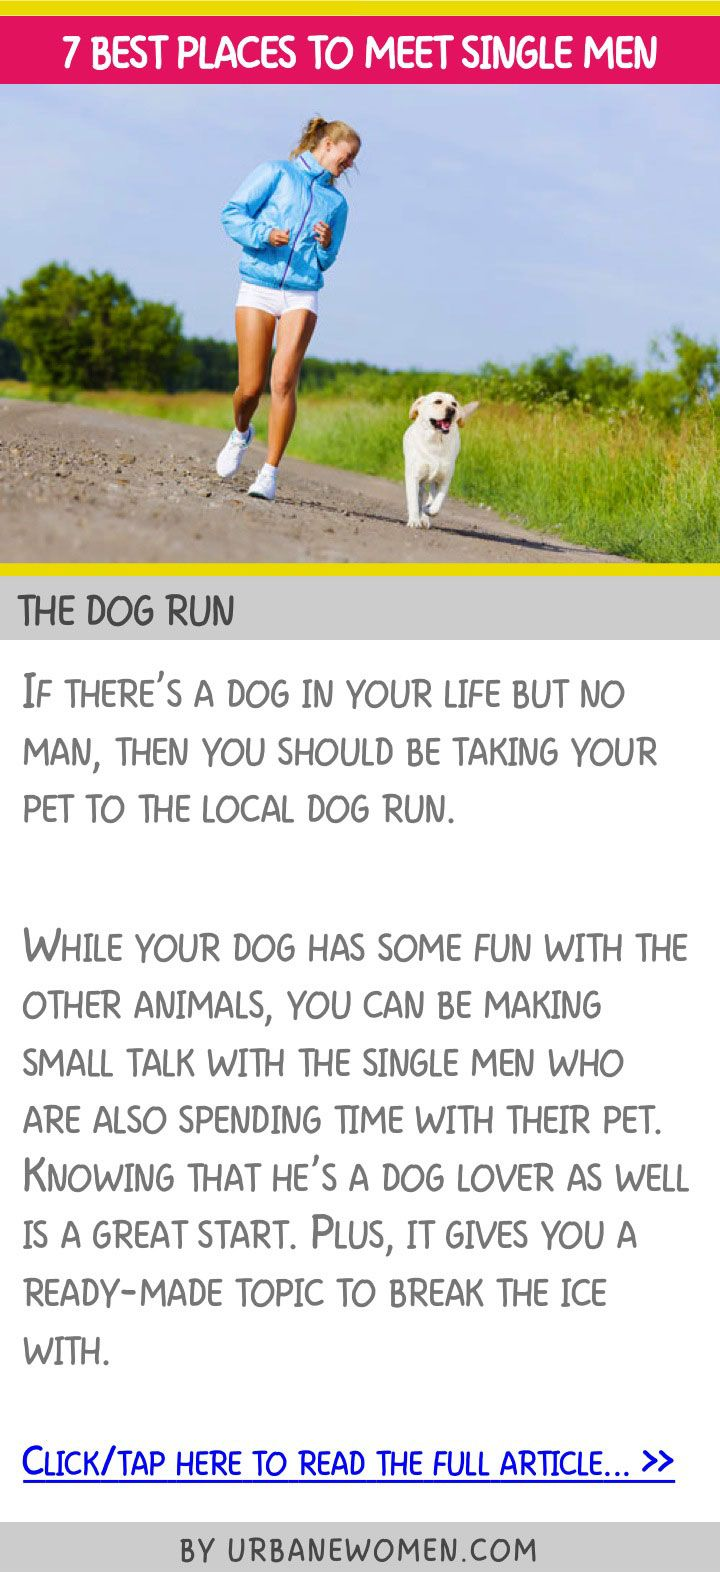 7 best places to meet single men - The dog run